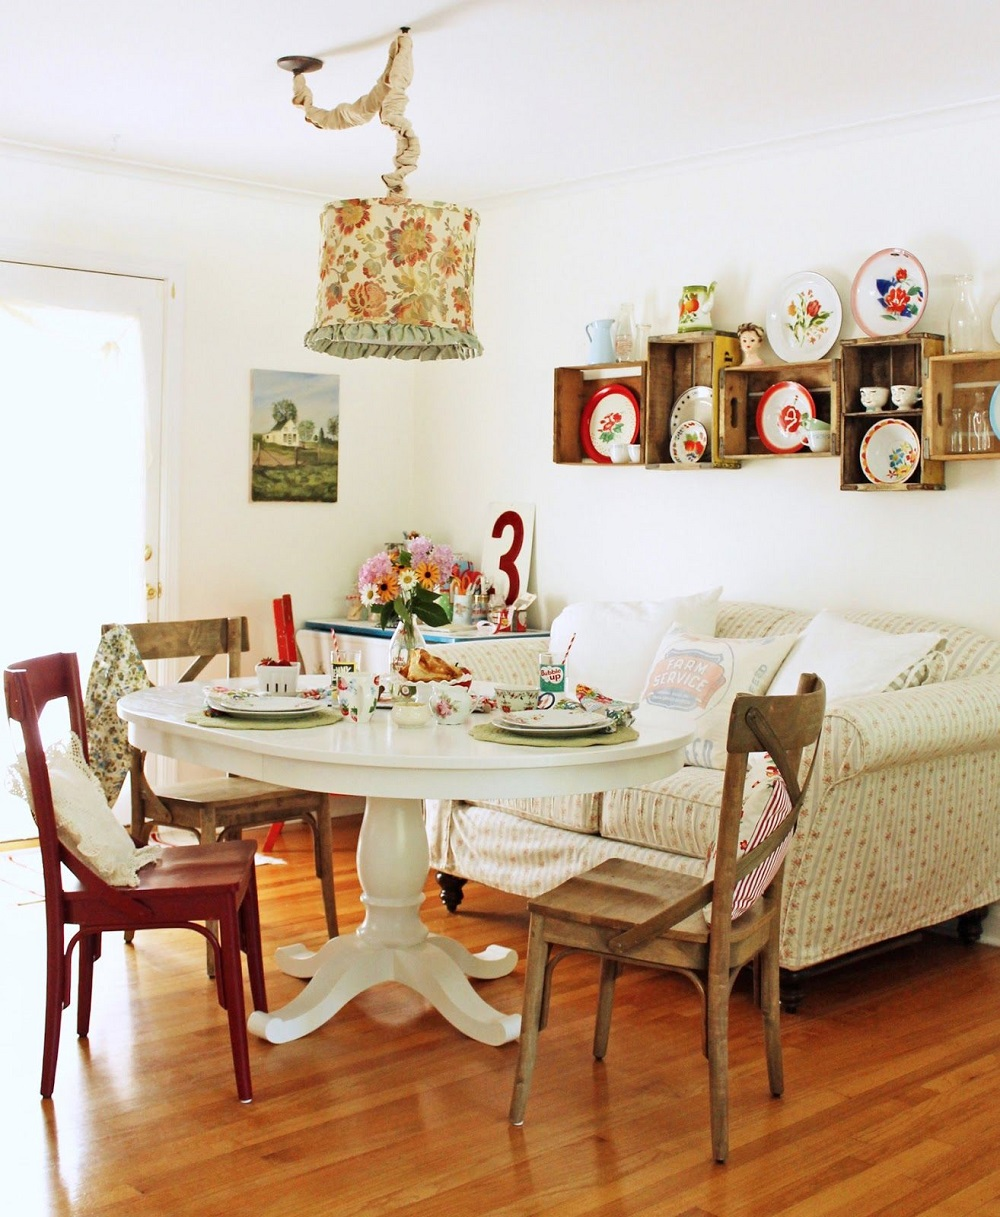 cot5 Cottage style home ideas to create your own cottage home